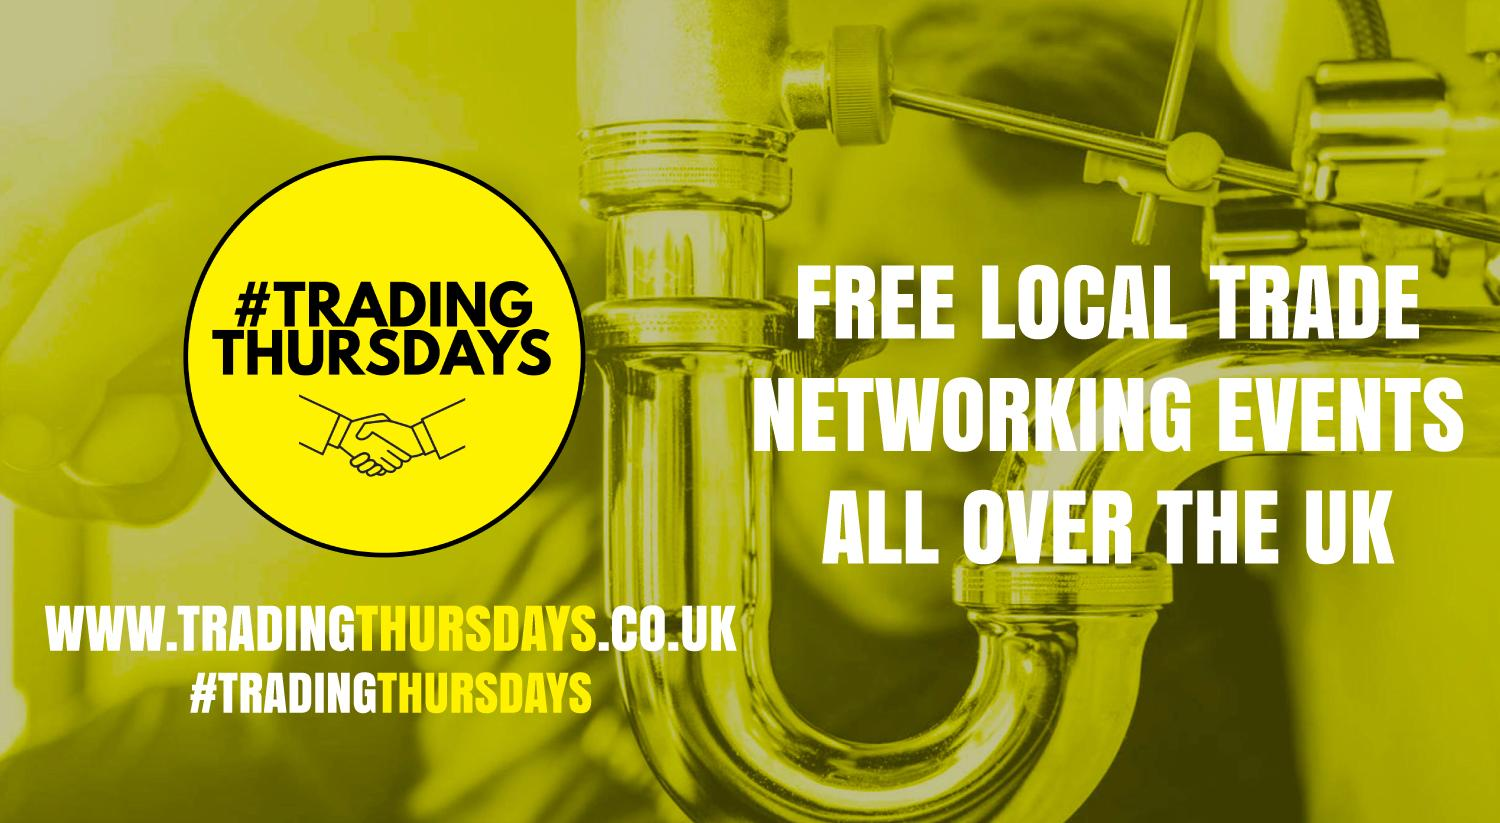 Trading Thursdays! Free networking event for traders in Aldershot